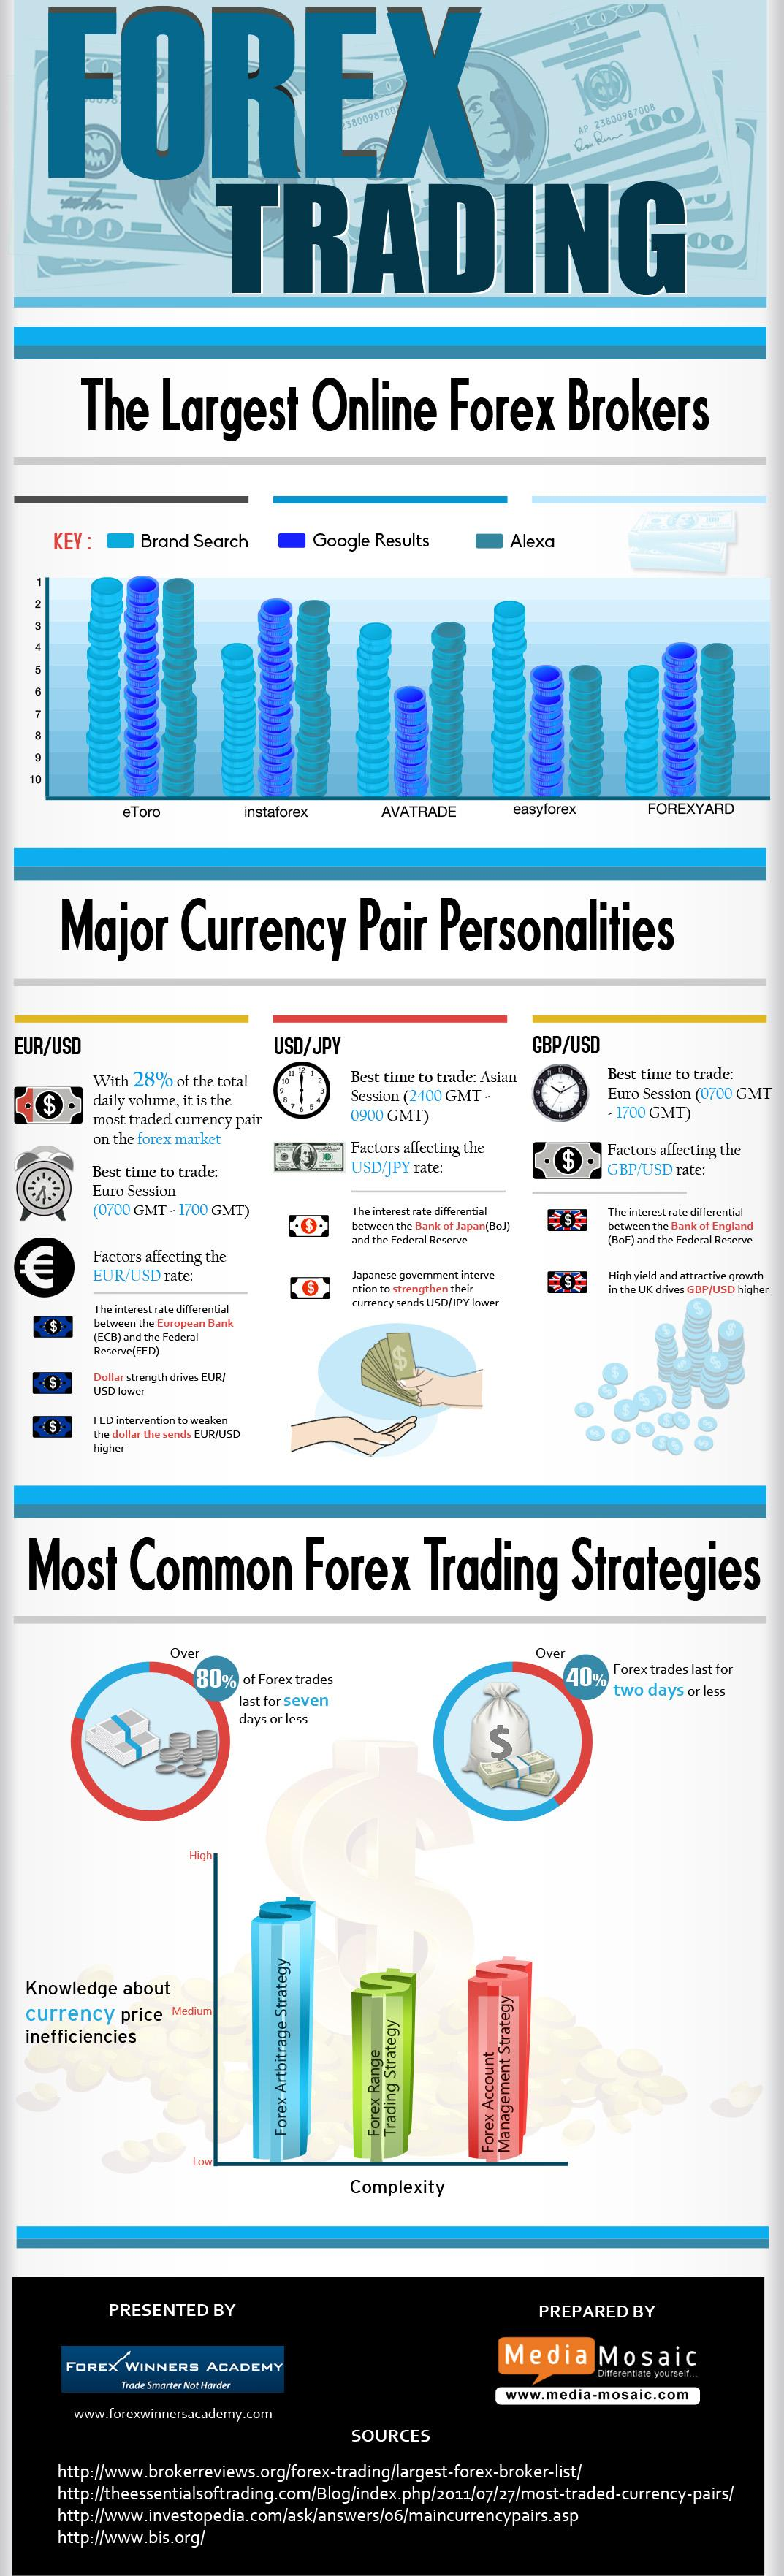 Forex Trading - Learn currency trading | Forex Winners Academy